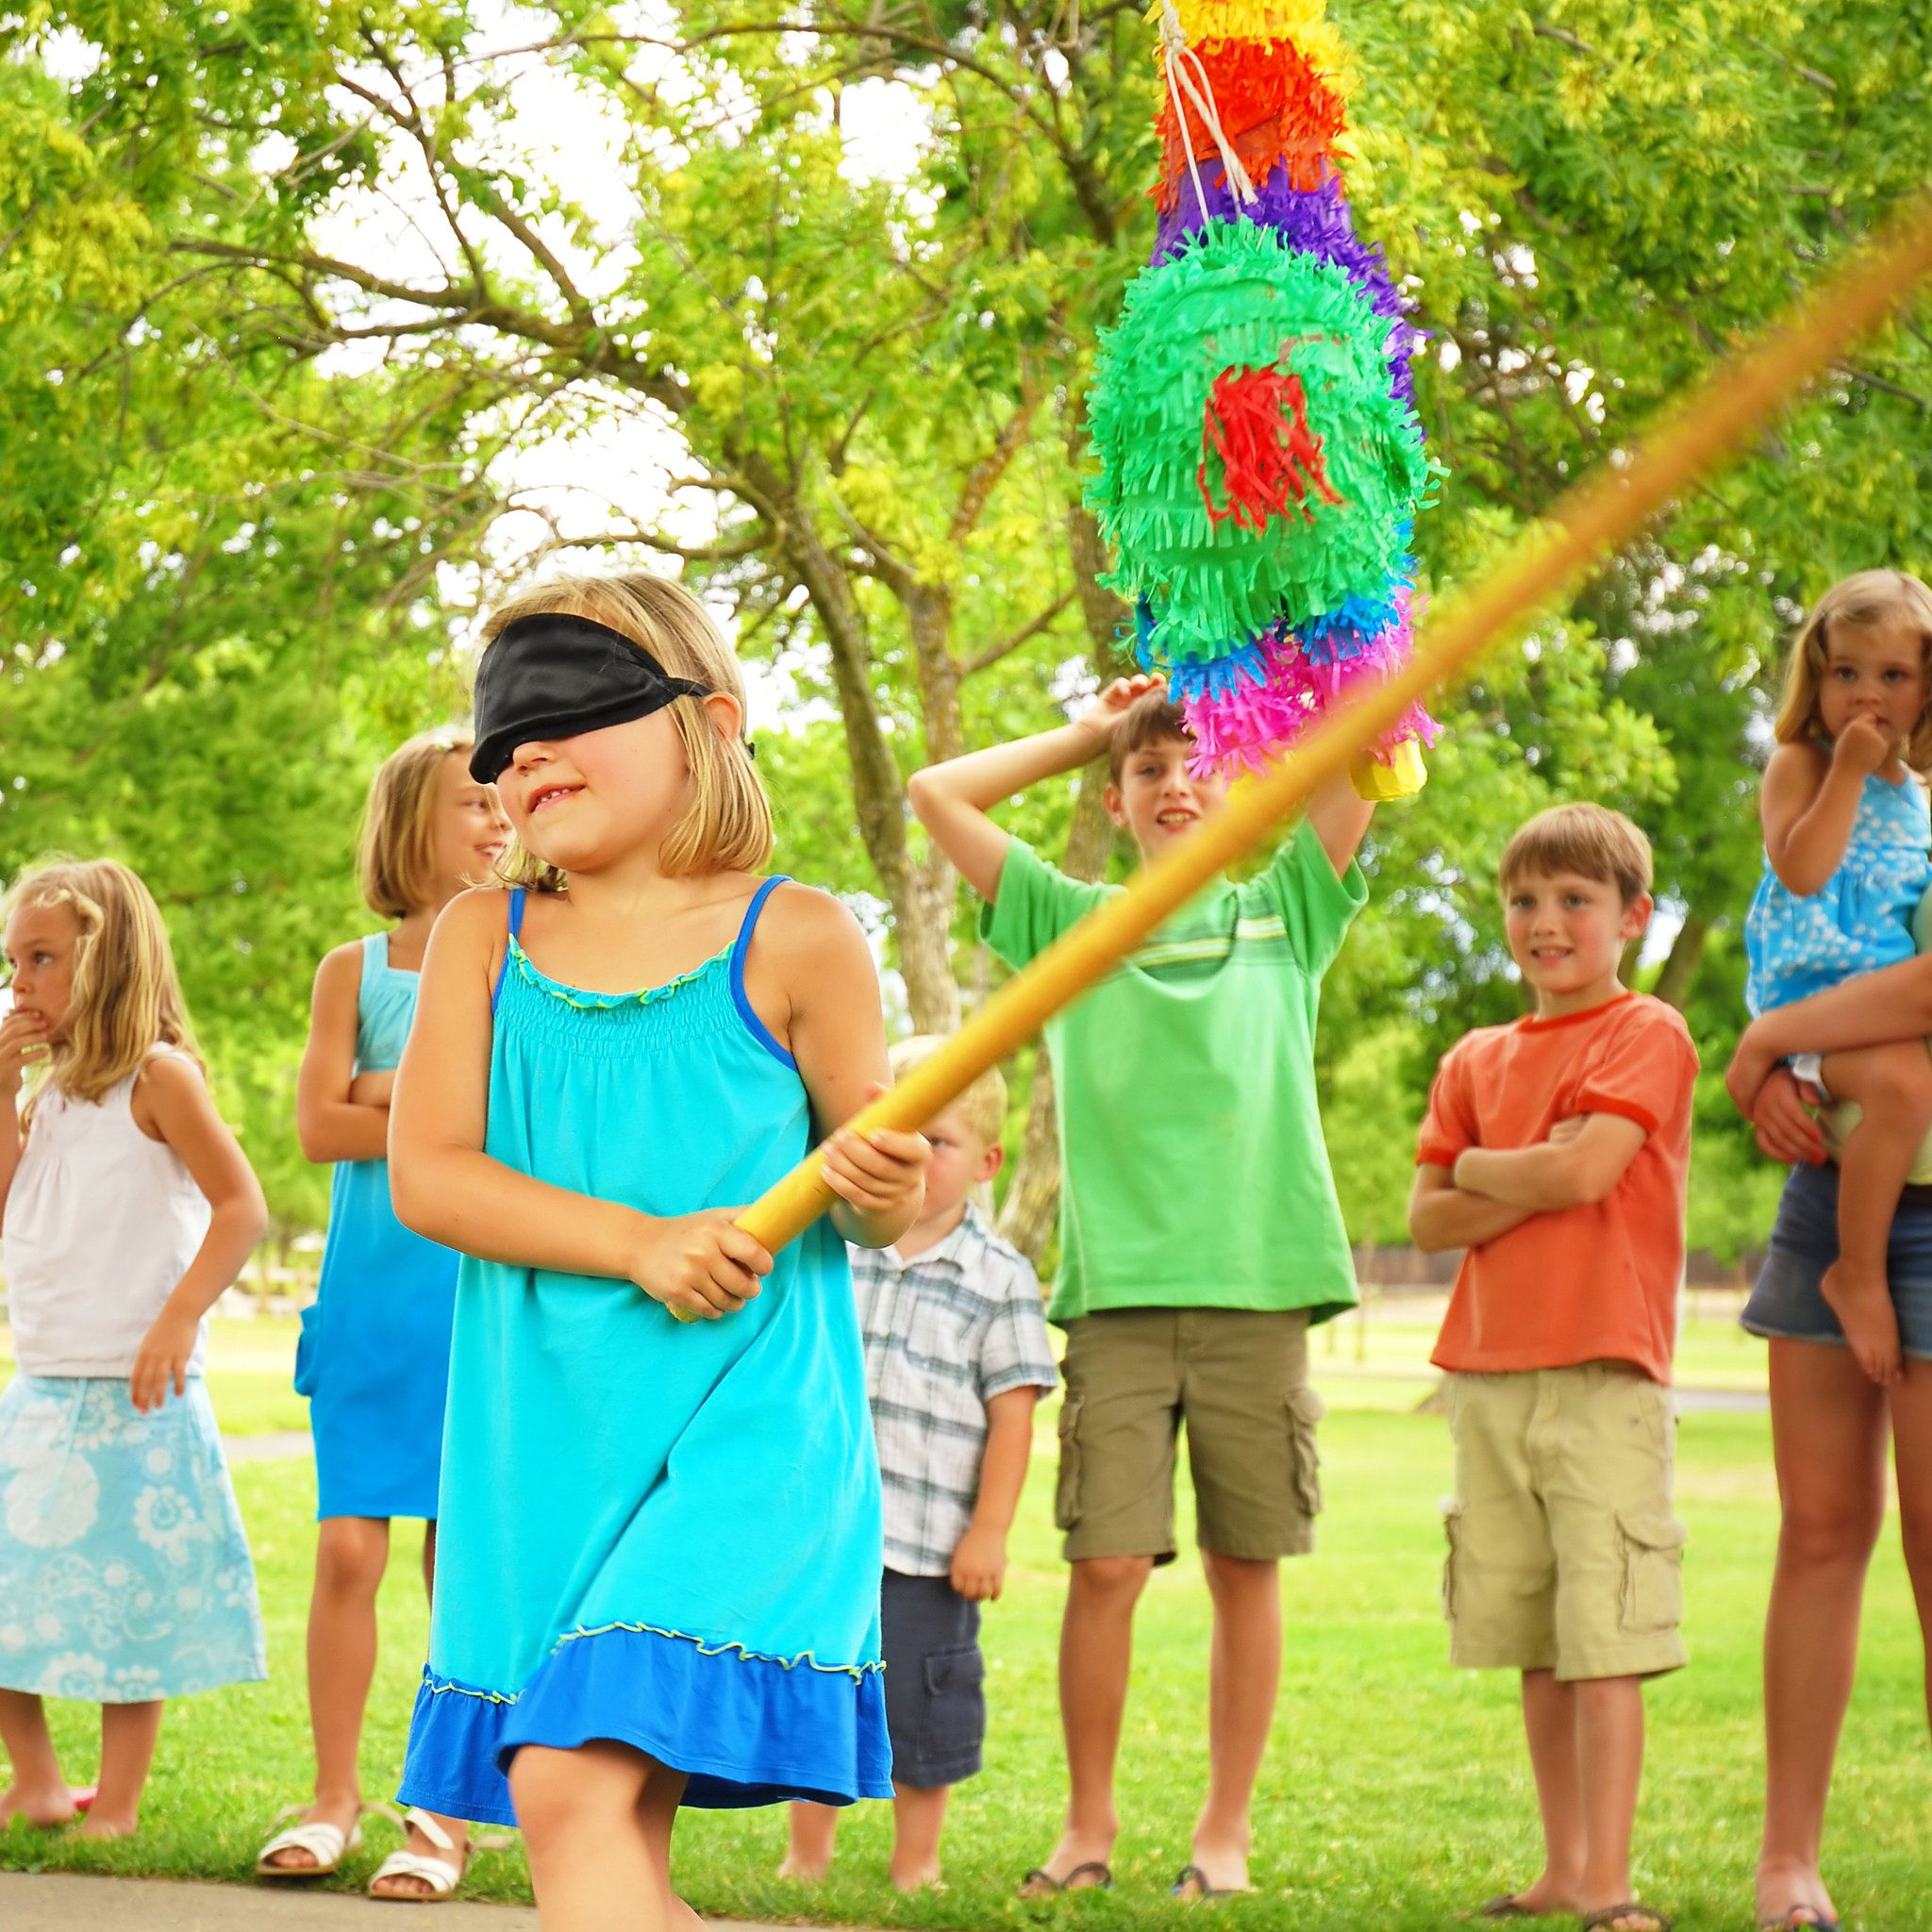 7 Fun Birthday Party Games For Kids Birthday party games